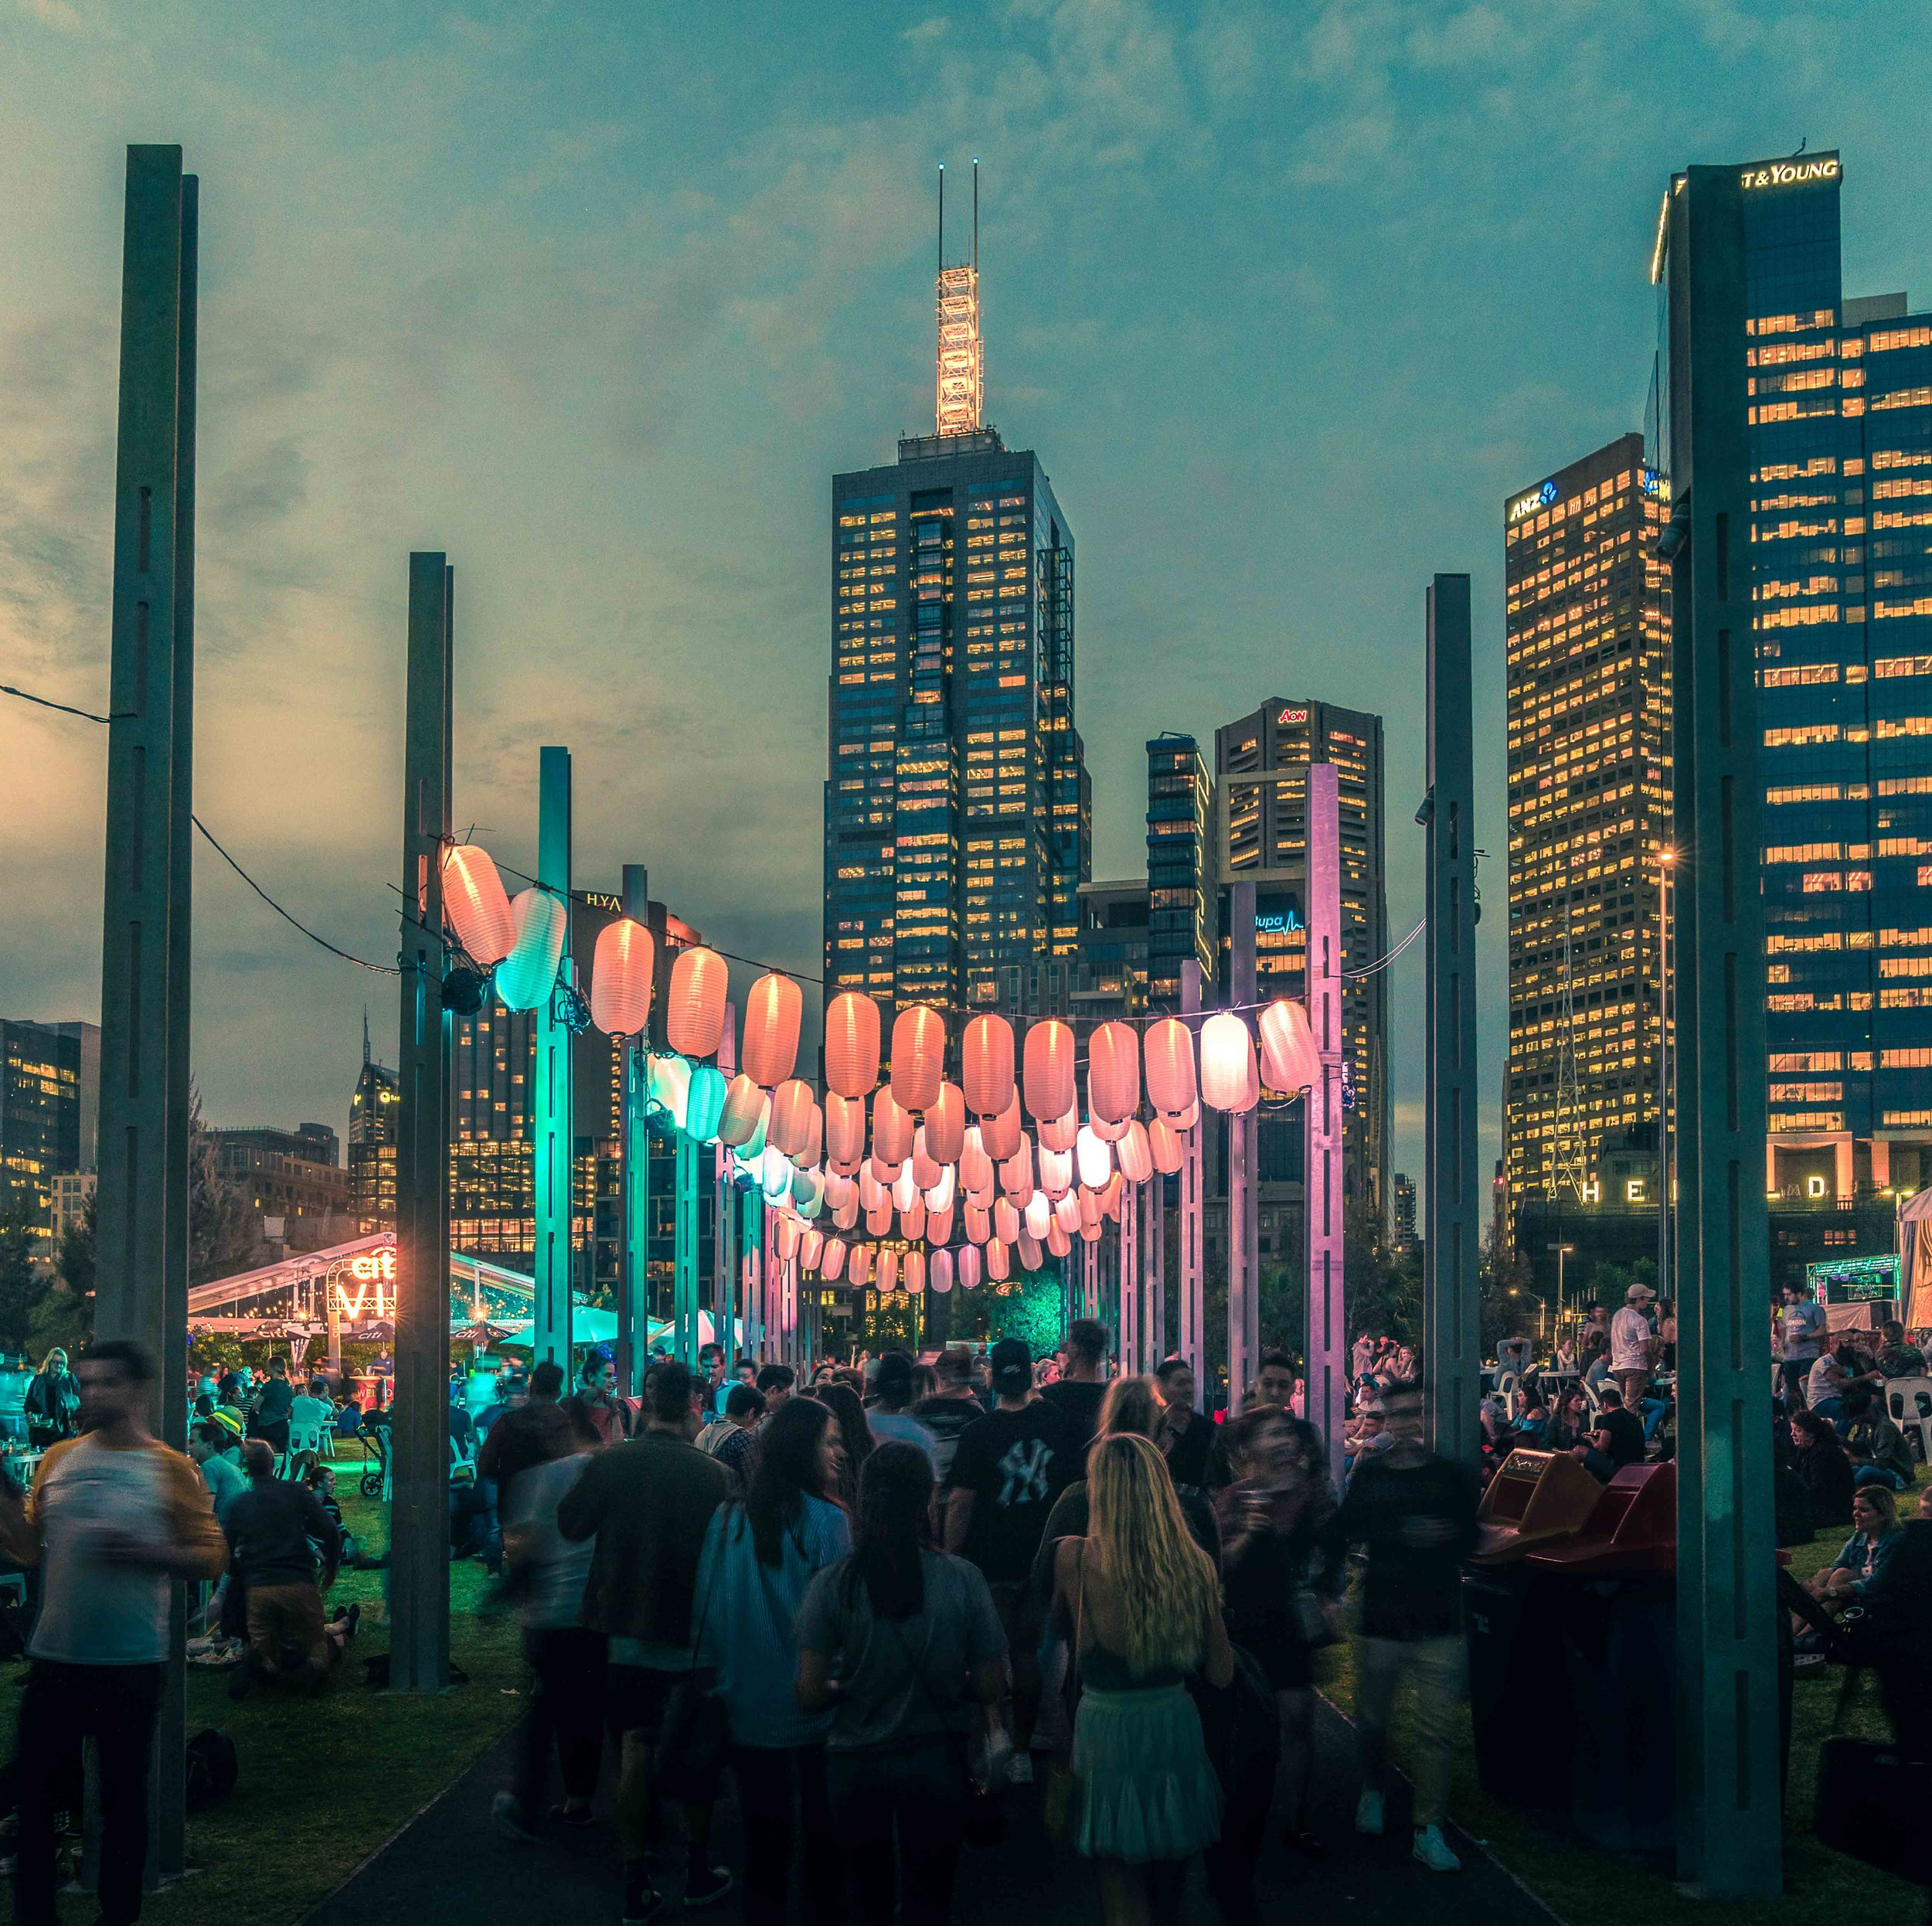 Melbourne, Night Noodle Markets   My home town, but having only just returned after some time away, i have a fresh view on this amazing city.